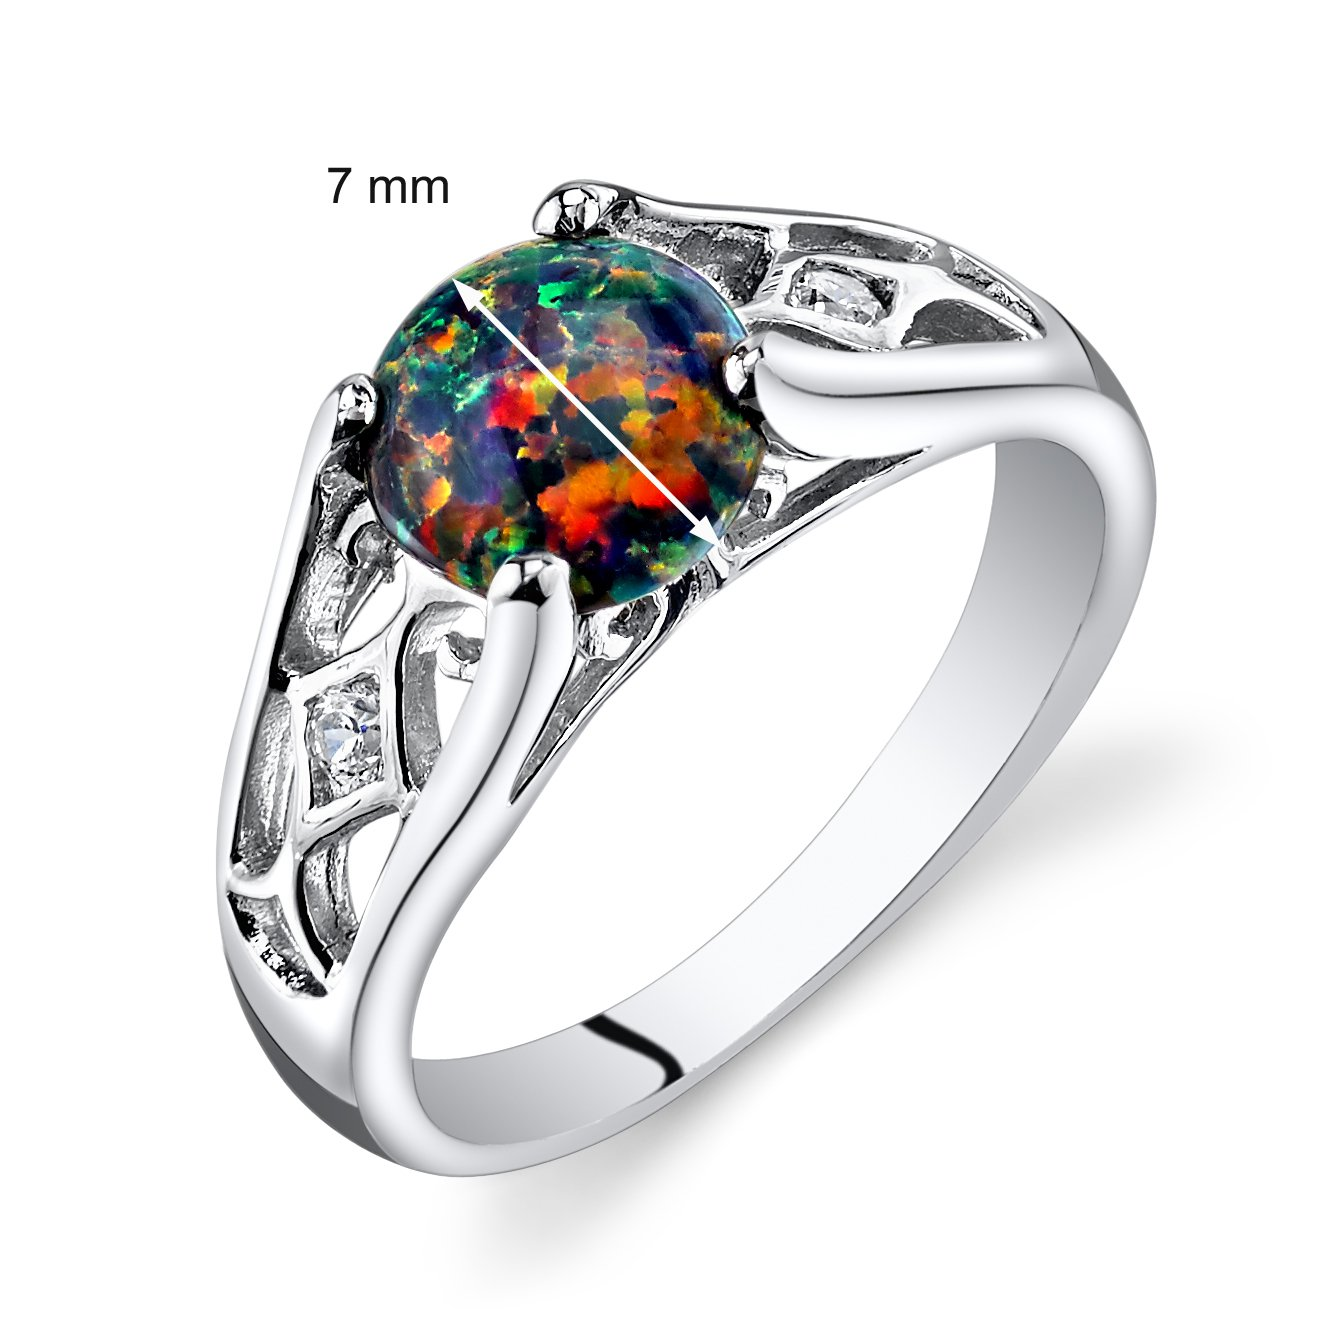 Peora Created Black Opal Venetian Ring Sterling Silver 1.00 Carats Sizes 5 to 9